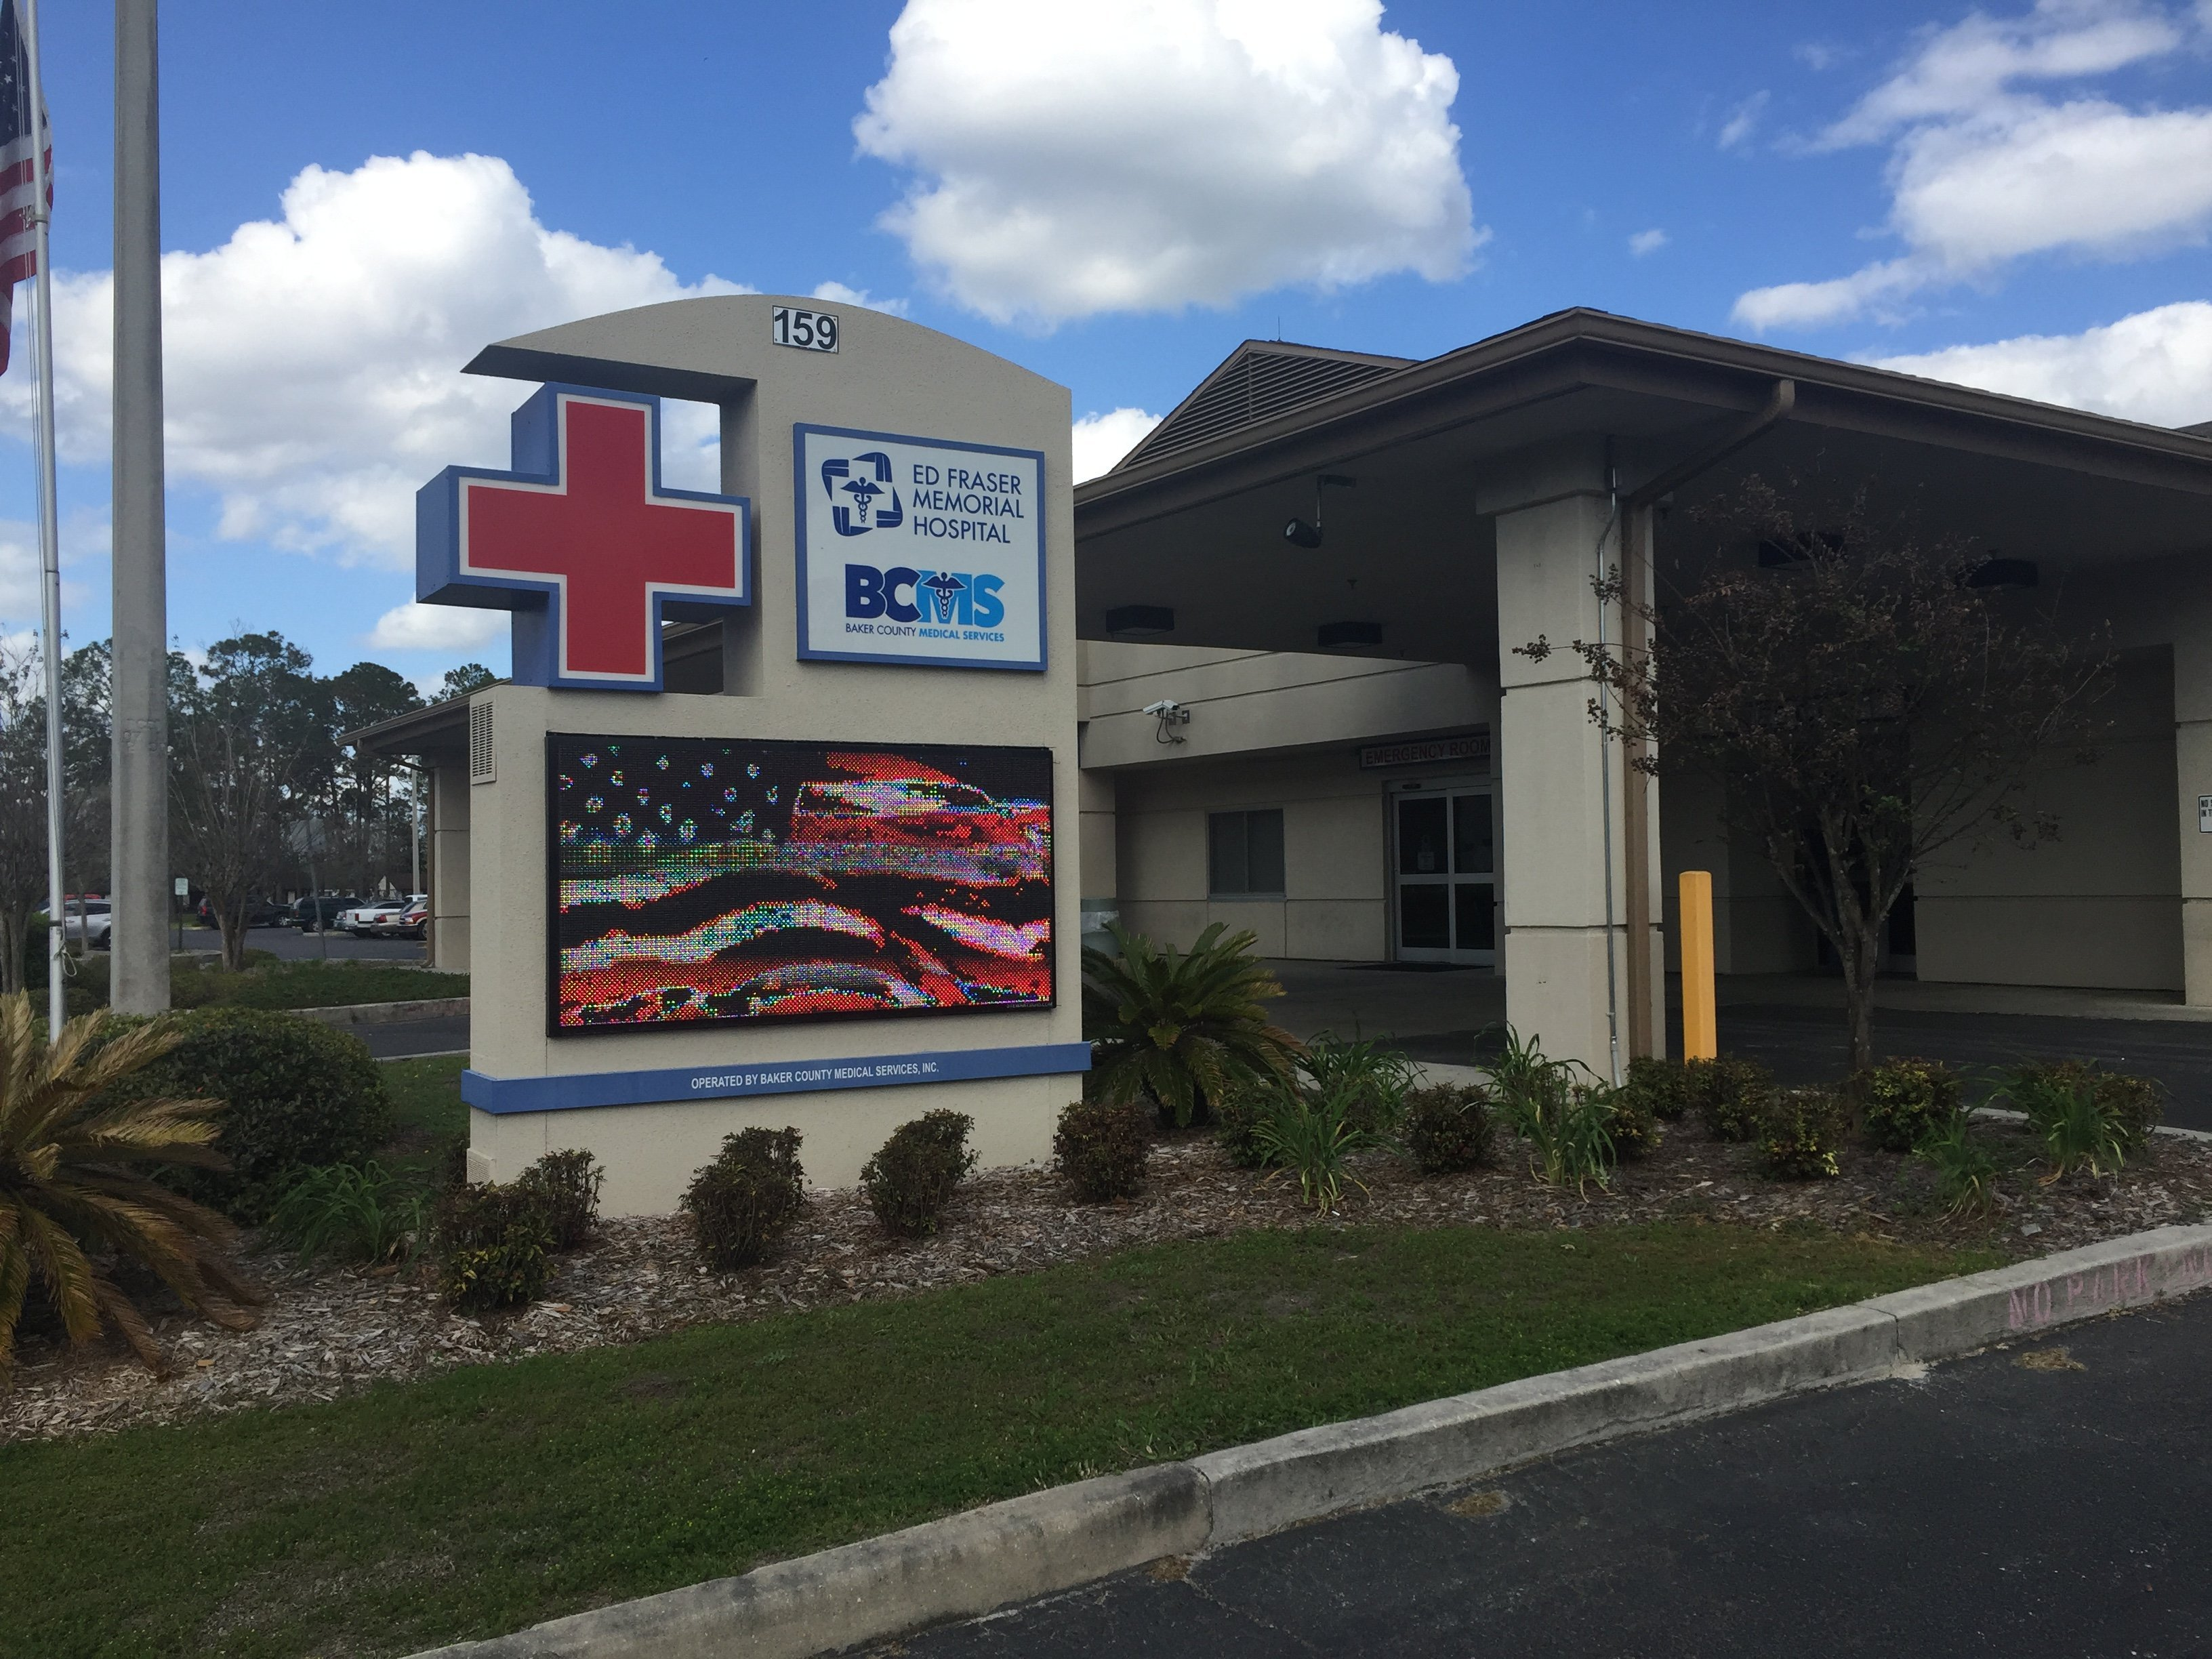 The Ed Fraser Memorial Hospital named after Gardner Kent Fraser's Great Grandfather in Macclenny, Florida